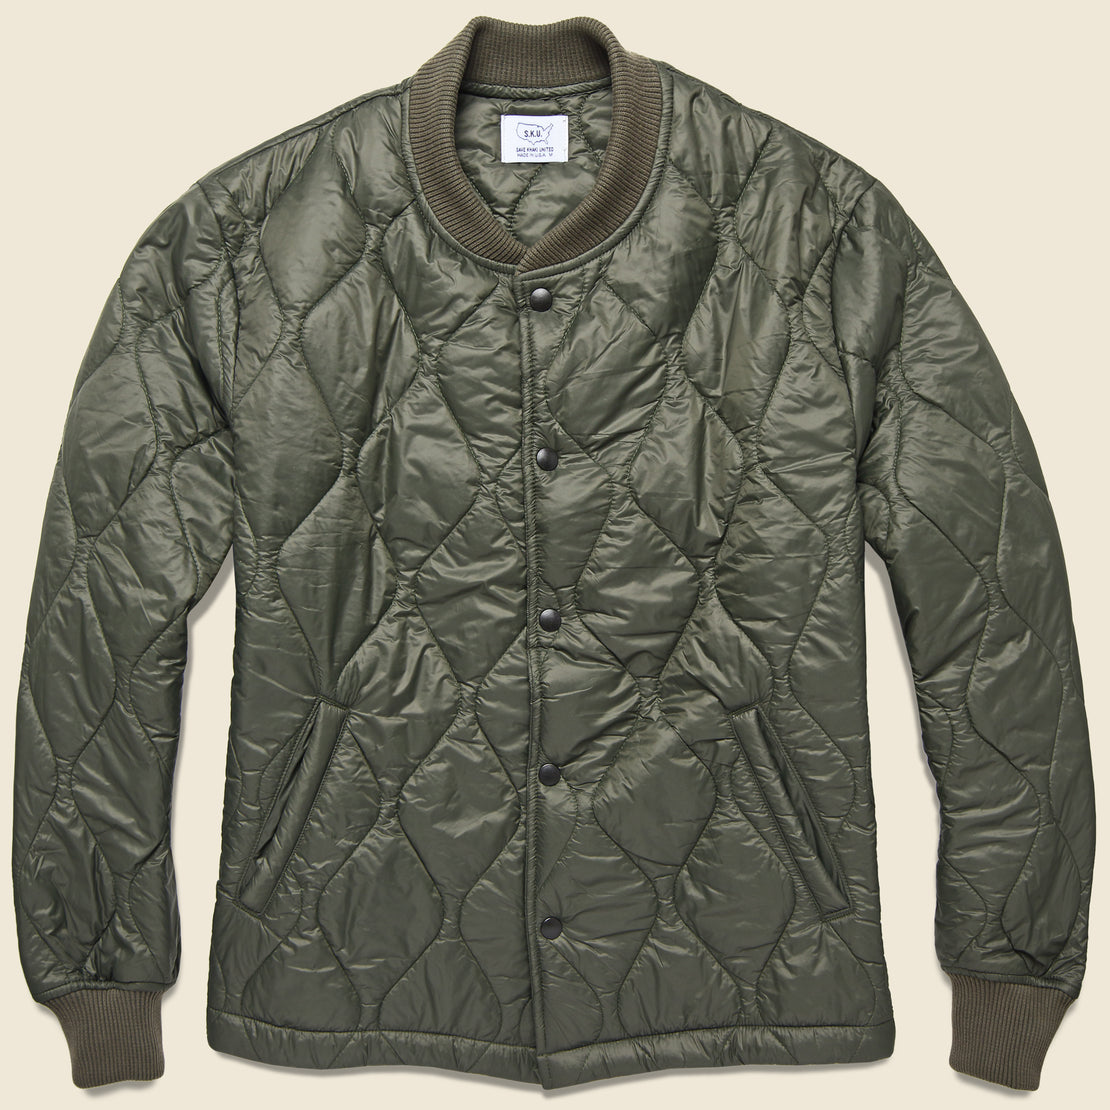 Save Khaki Quilted Nylon Bomber - Olive